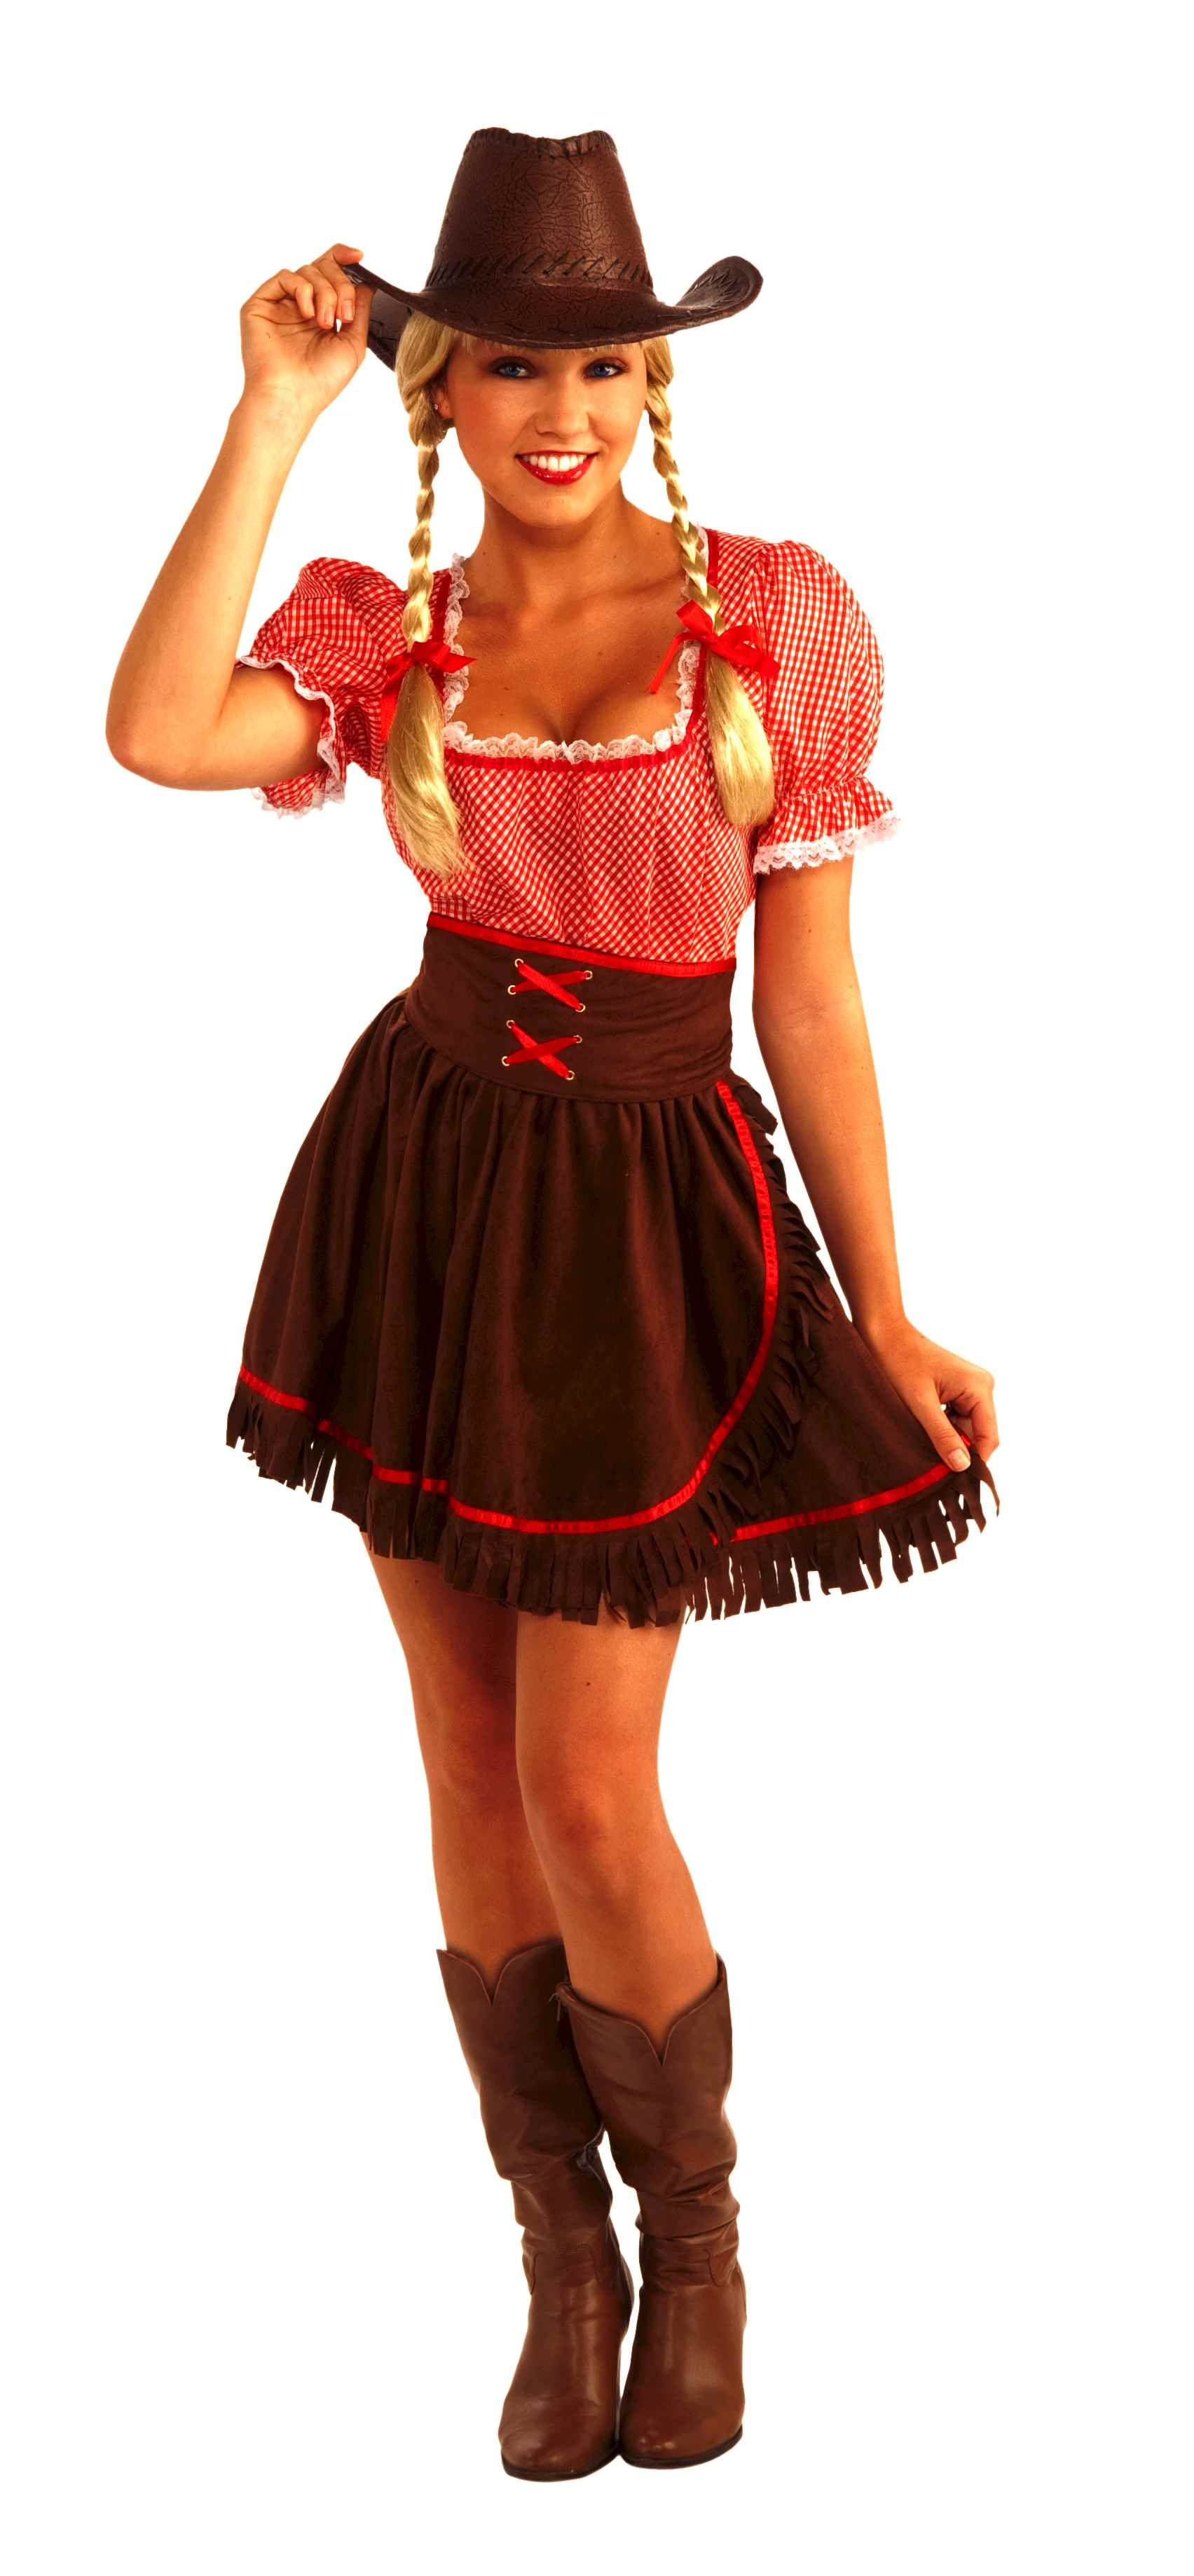 d1b2d957f88 Western Square Dancing Cowpoke Cutie Dress Costume - Yeah Hah. This is a lady s  western theme square dancing costume. This costume includes a one piece ...